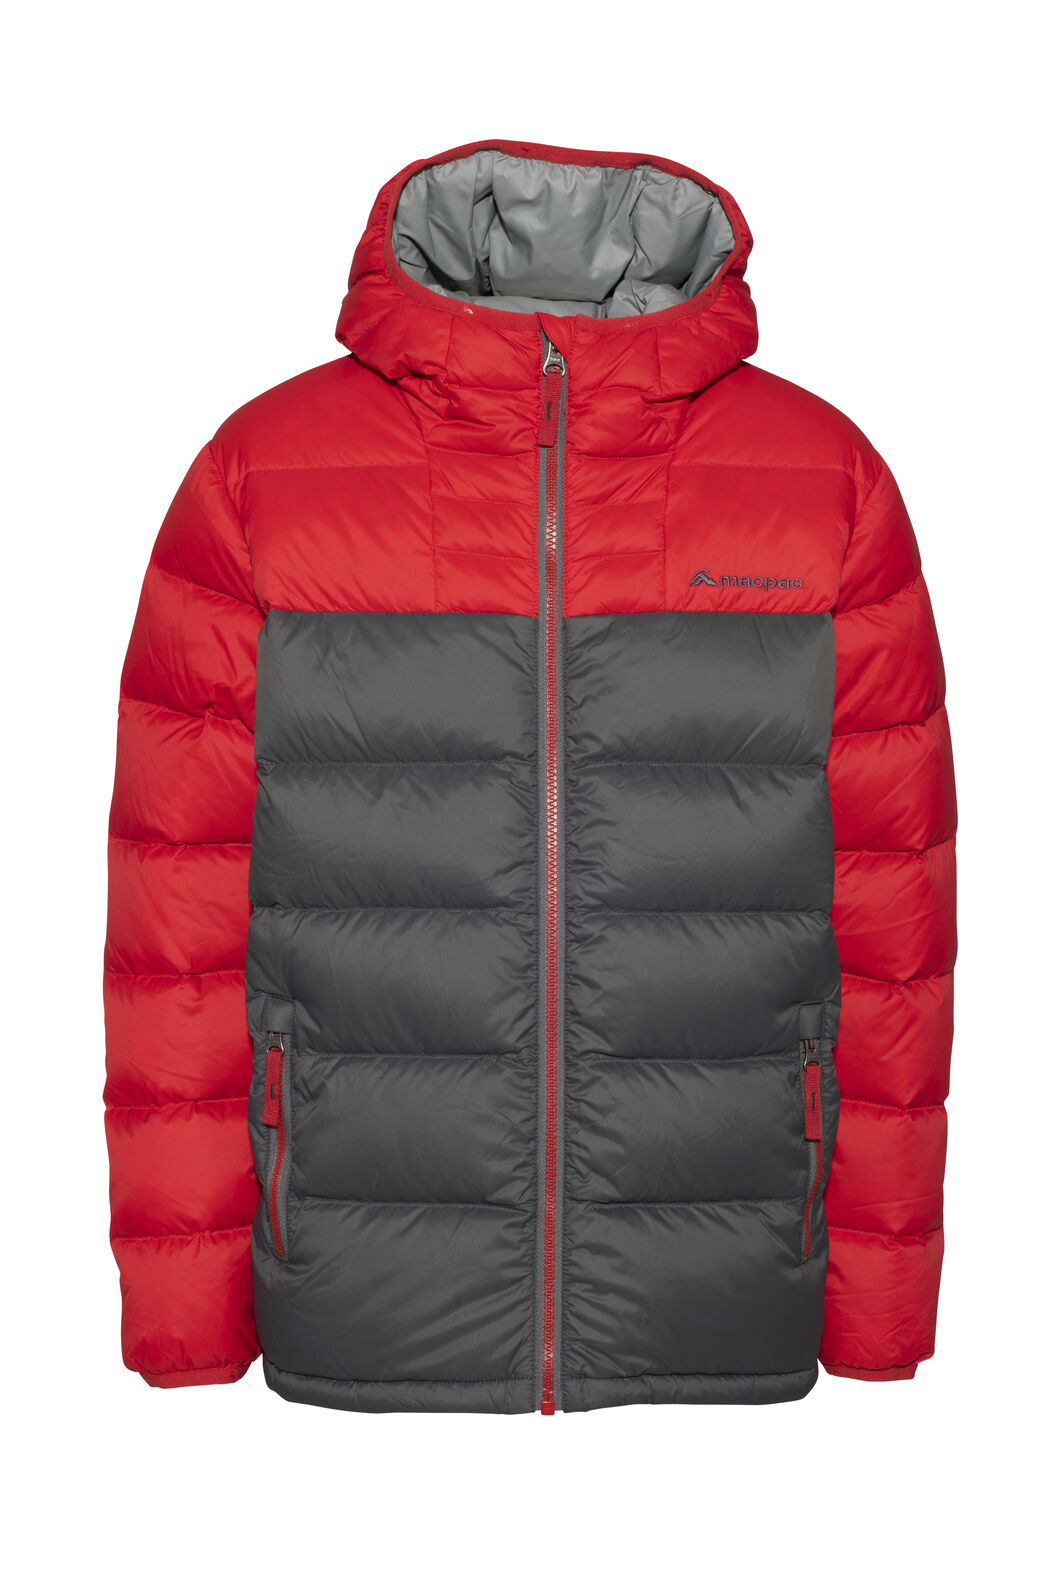 Macpac Atom Hooded Down Jacket — Kids', Samba/Iron Gate, hi-res